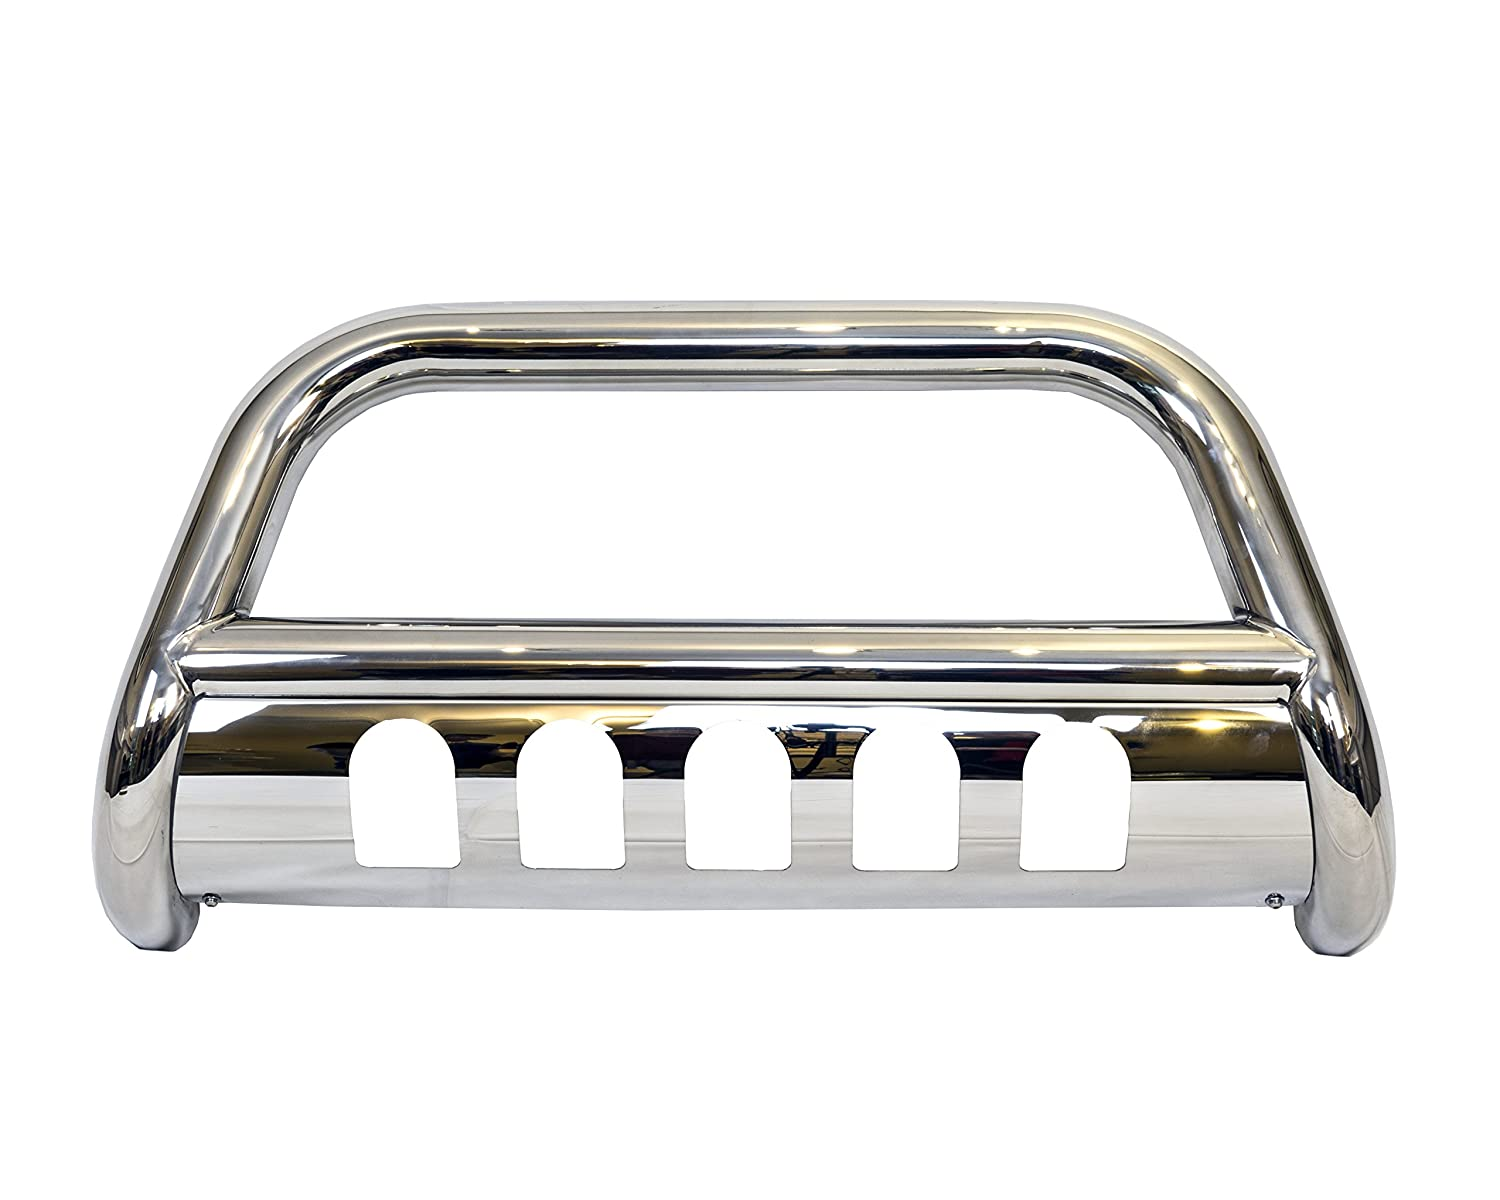 Galaxy Auto 3' Bull Bar for 2004-18 Ford F150 & 2003-17 Ford Expedition - Stainless Steel Bumper Grille Guard (Chrome)